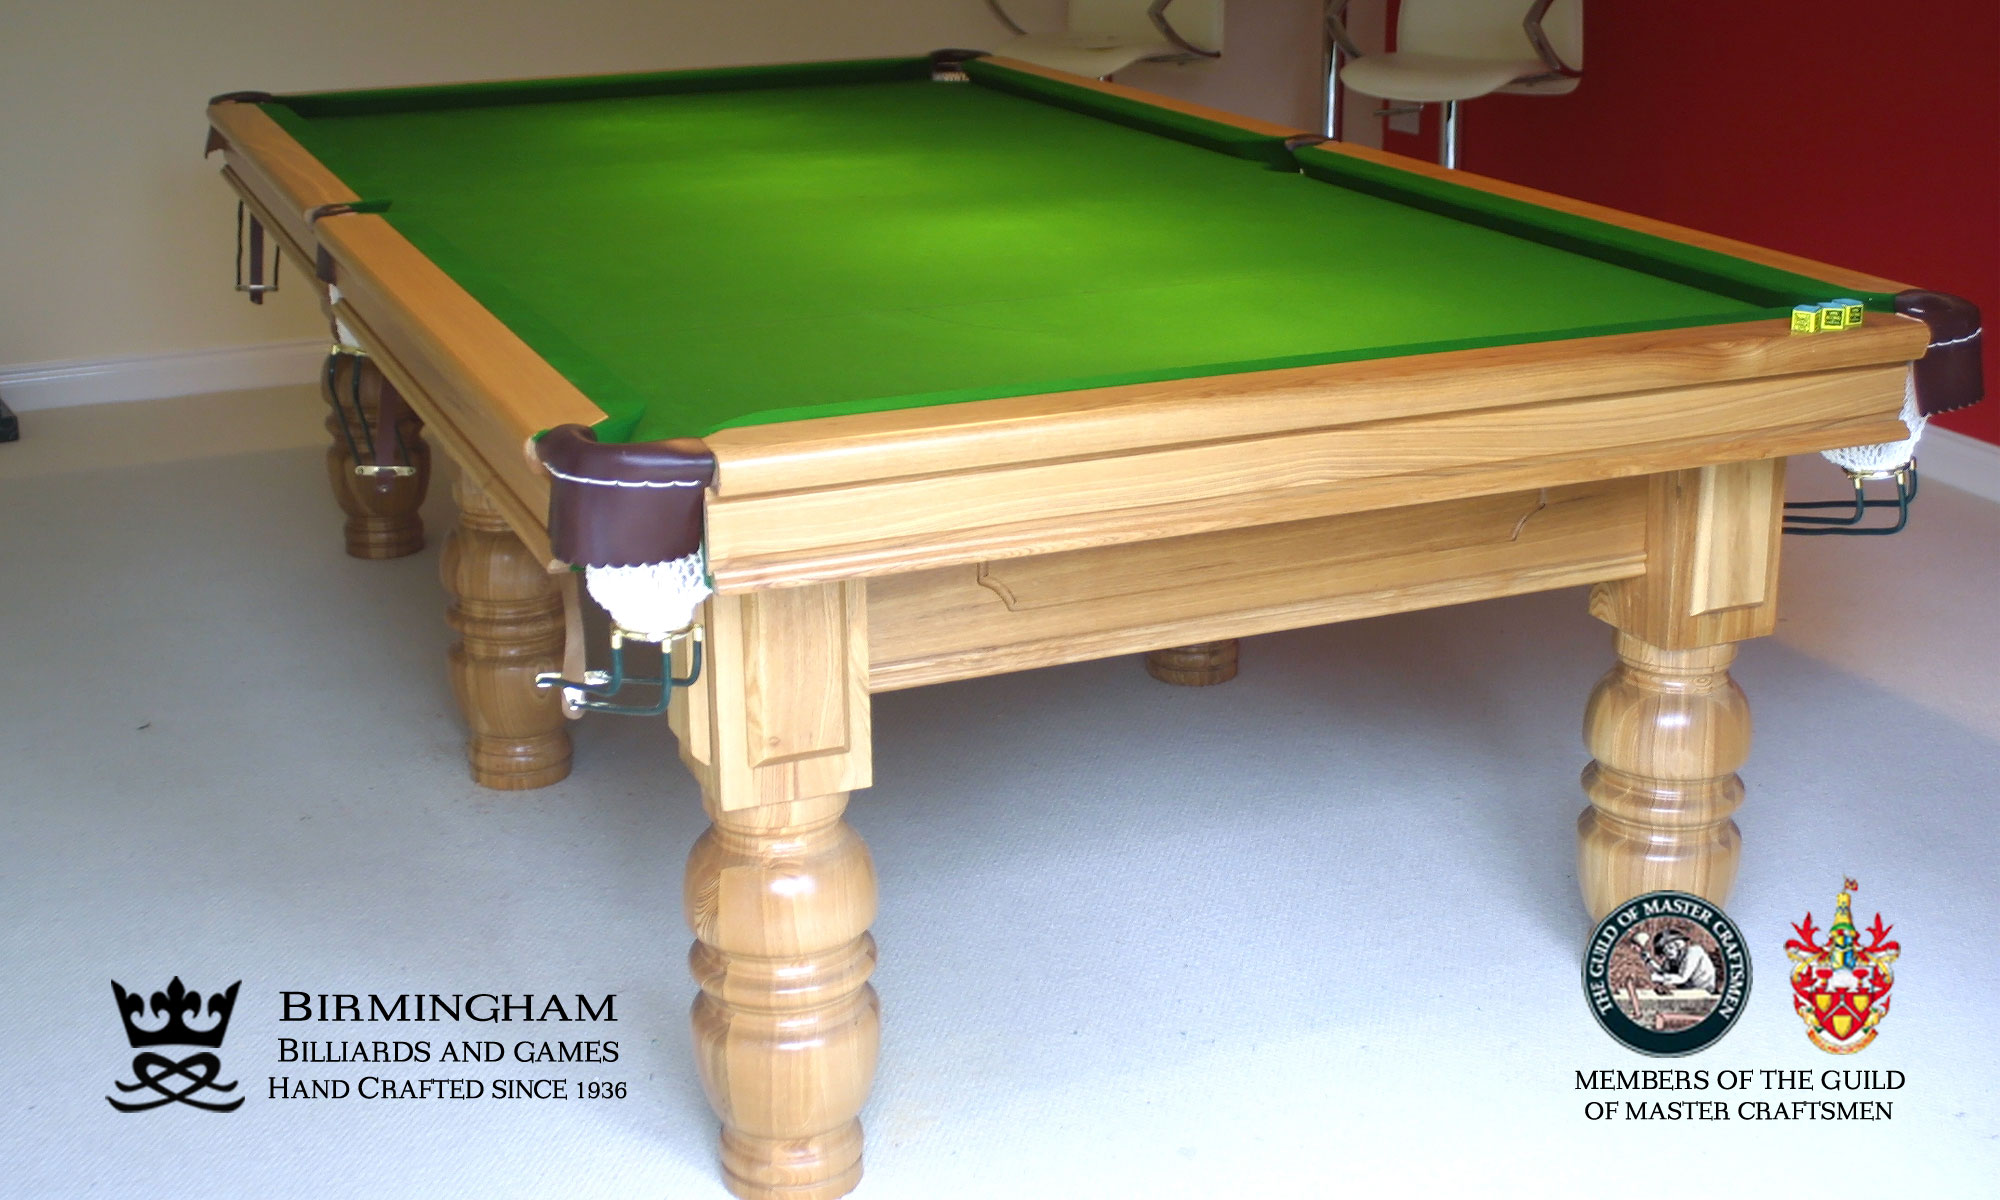 Timeless classic pool table, consort style, light oak